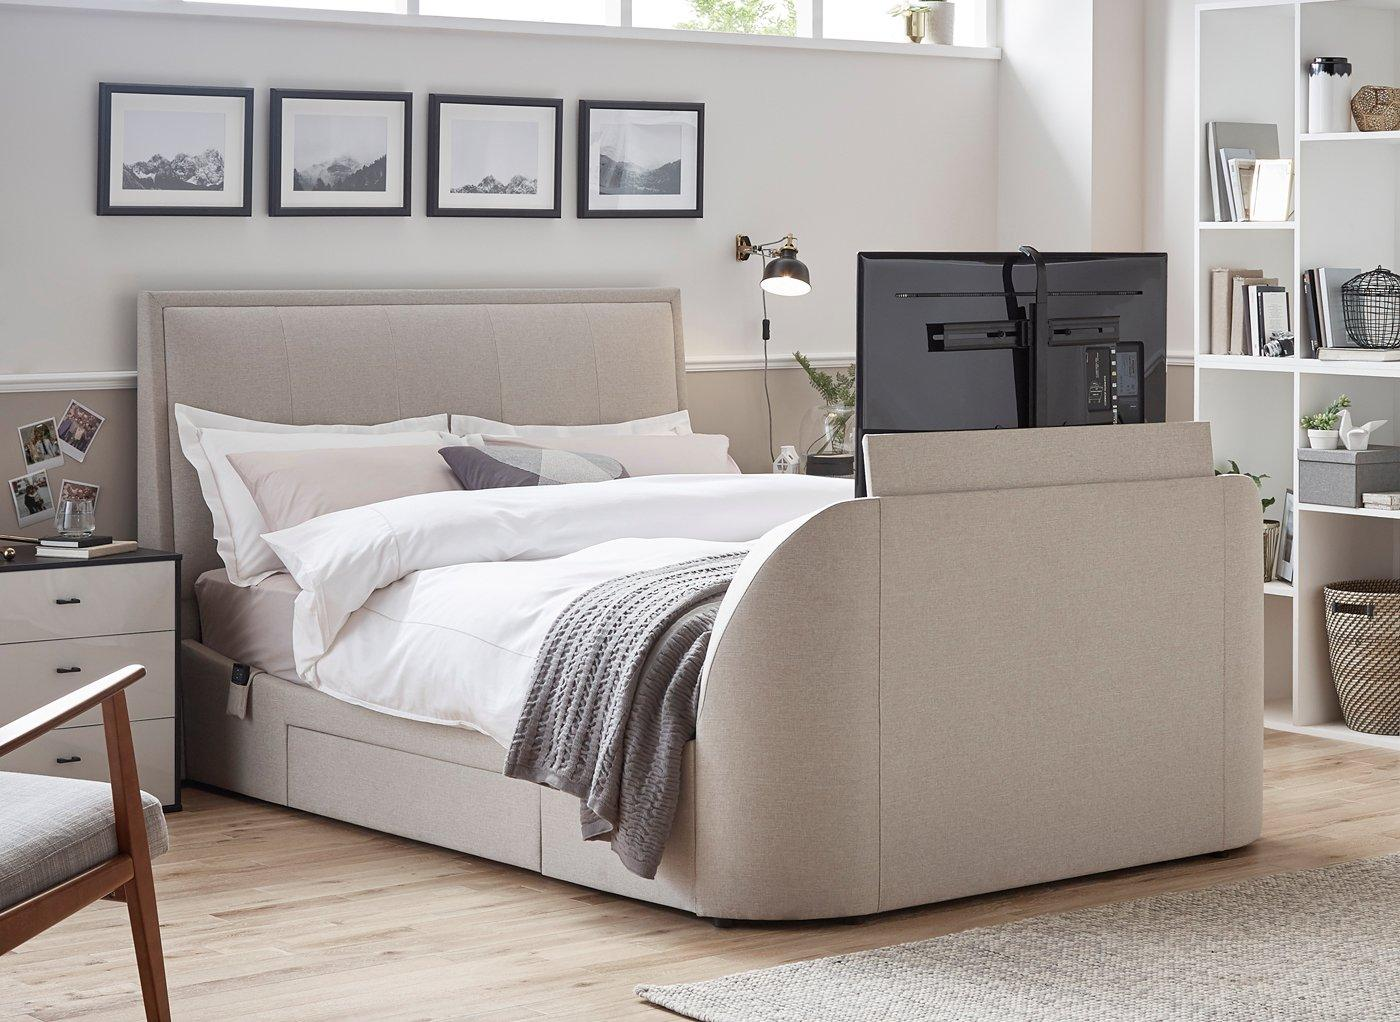 Tv In Bed : Sonic tv bed city furniture shop